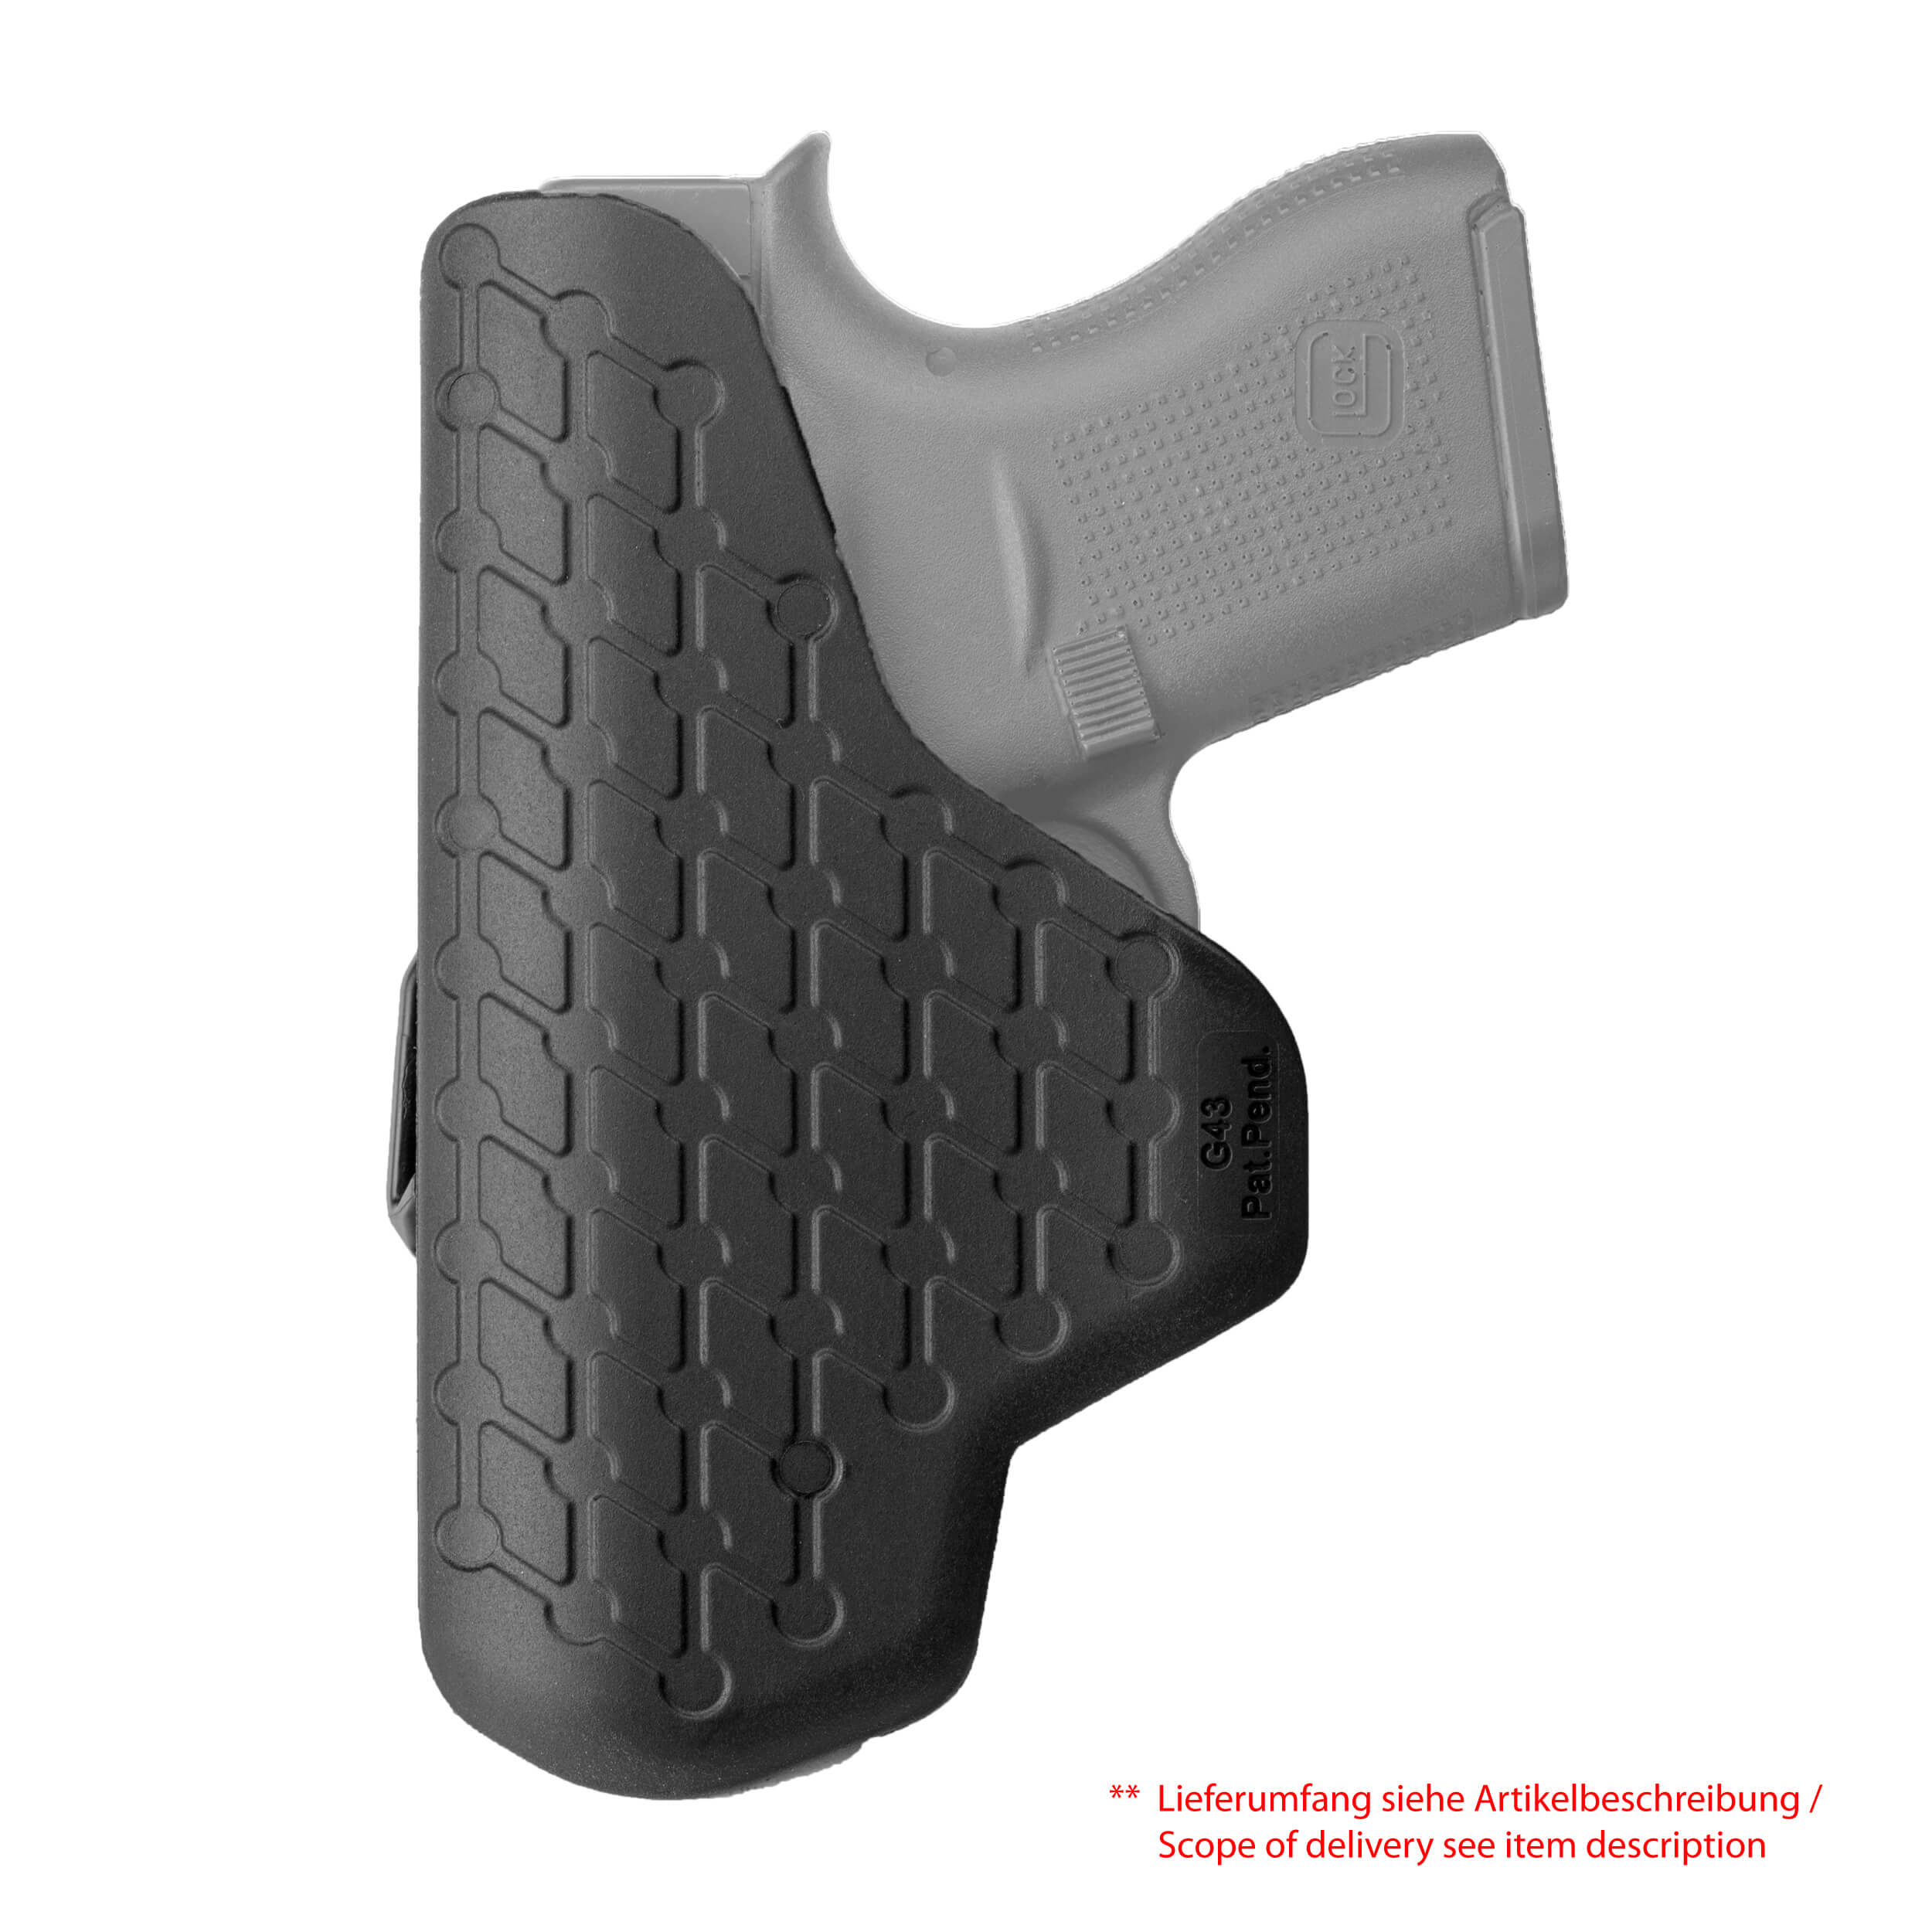 IWB Inside Waist Band Holster Glock 43